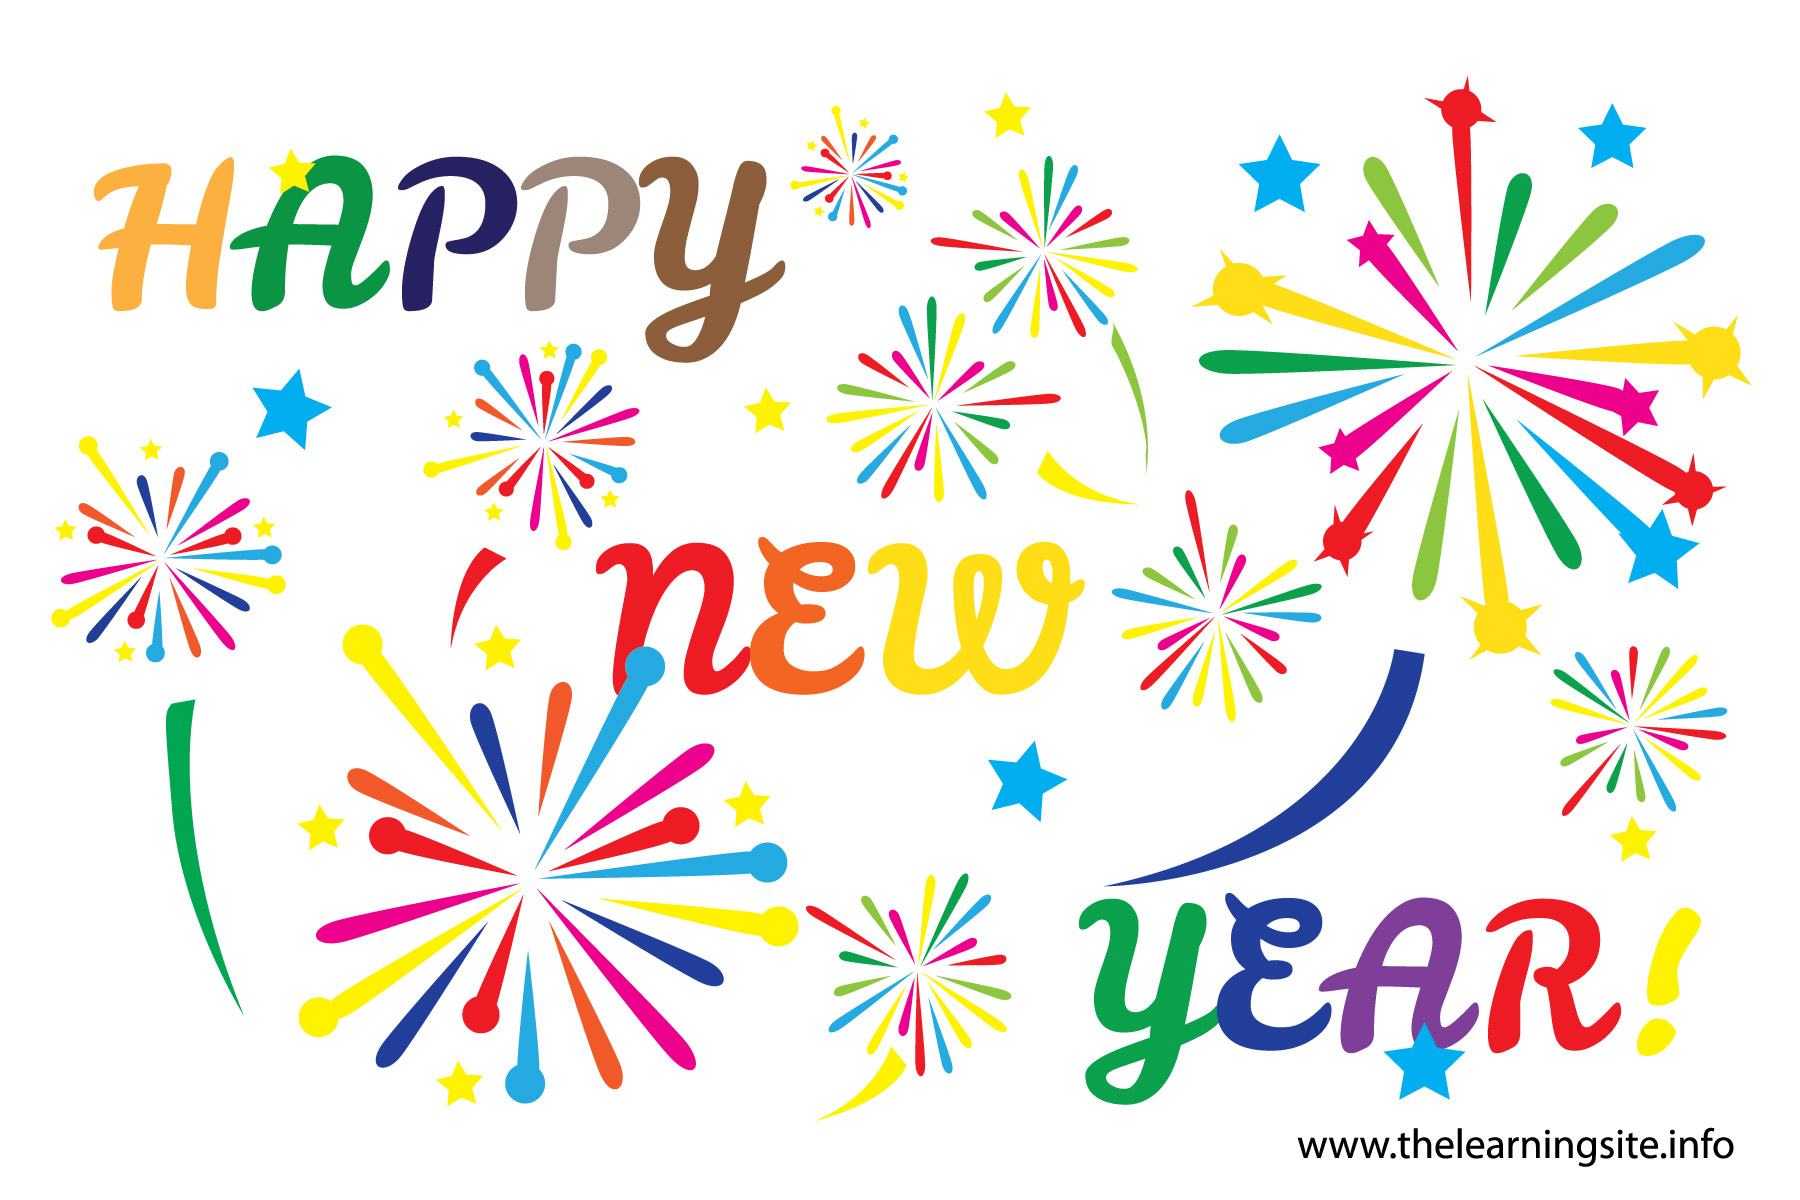 Happy New Year Clipart - .-Happy New Year Clipart - .-7